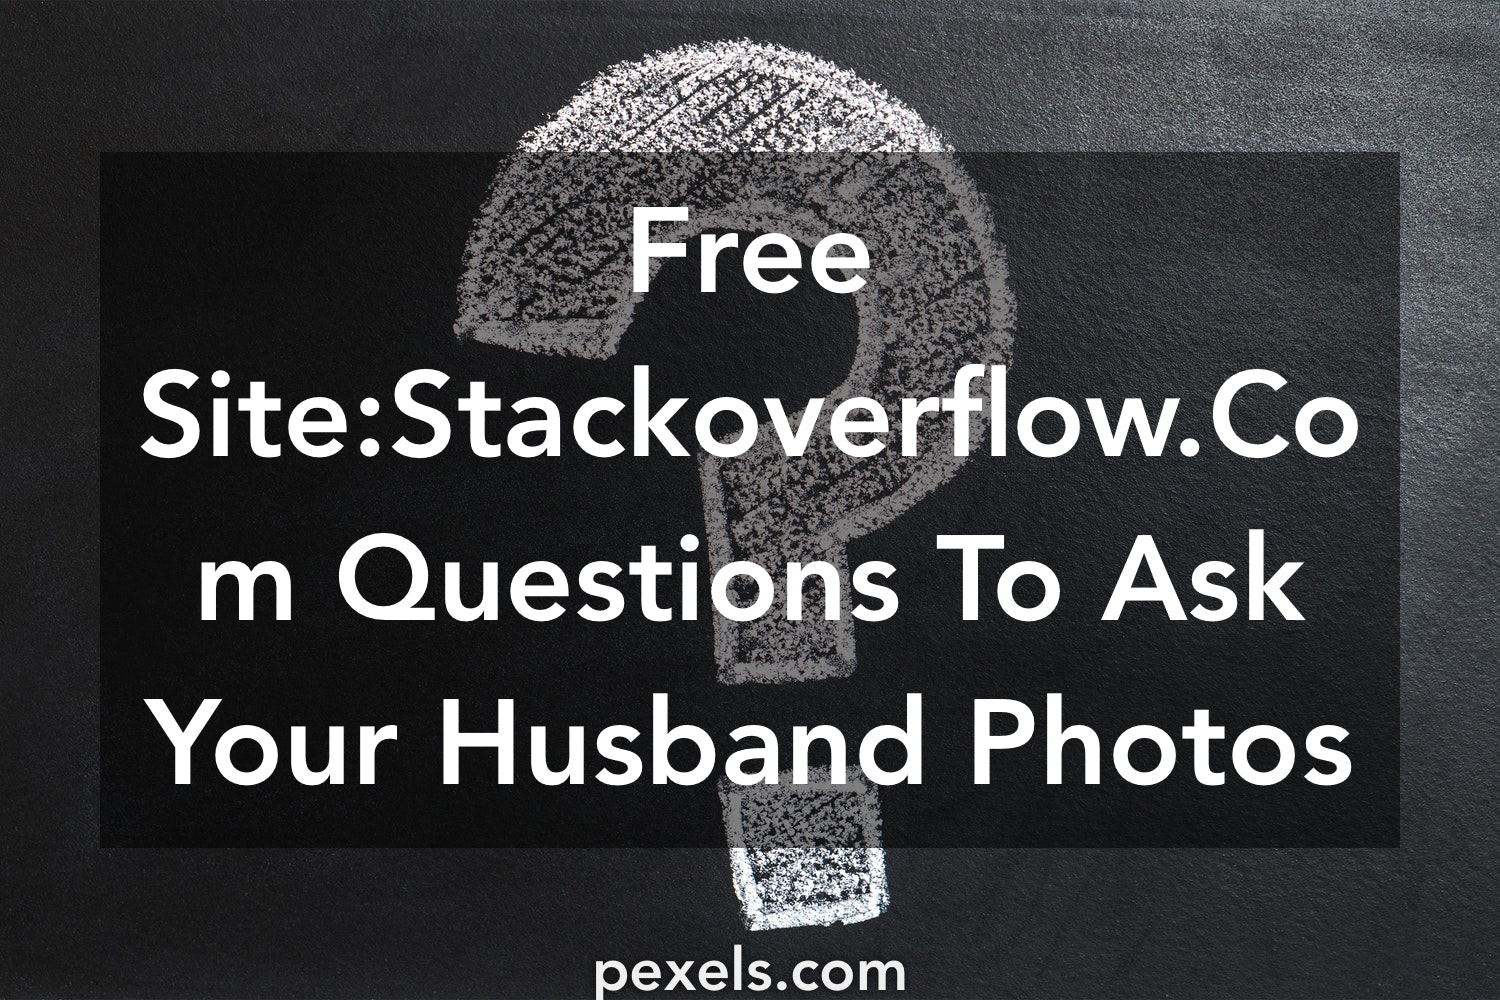 questions to ask your husband